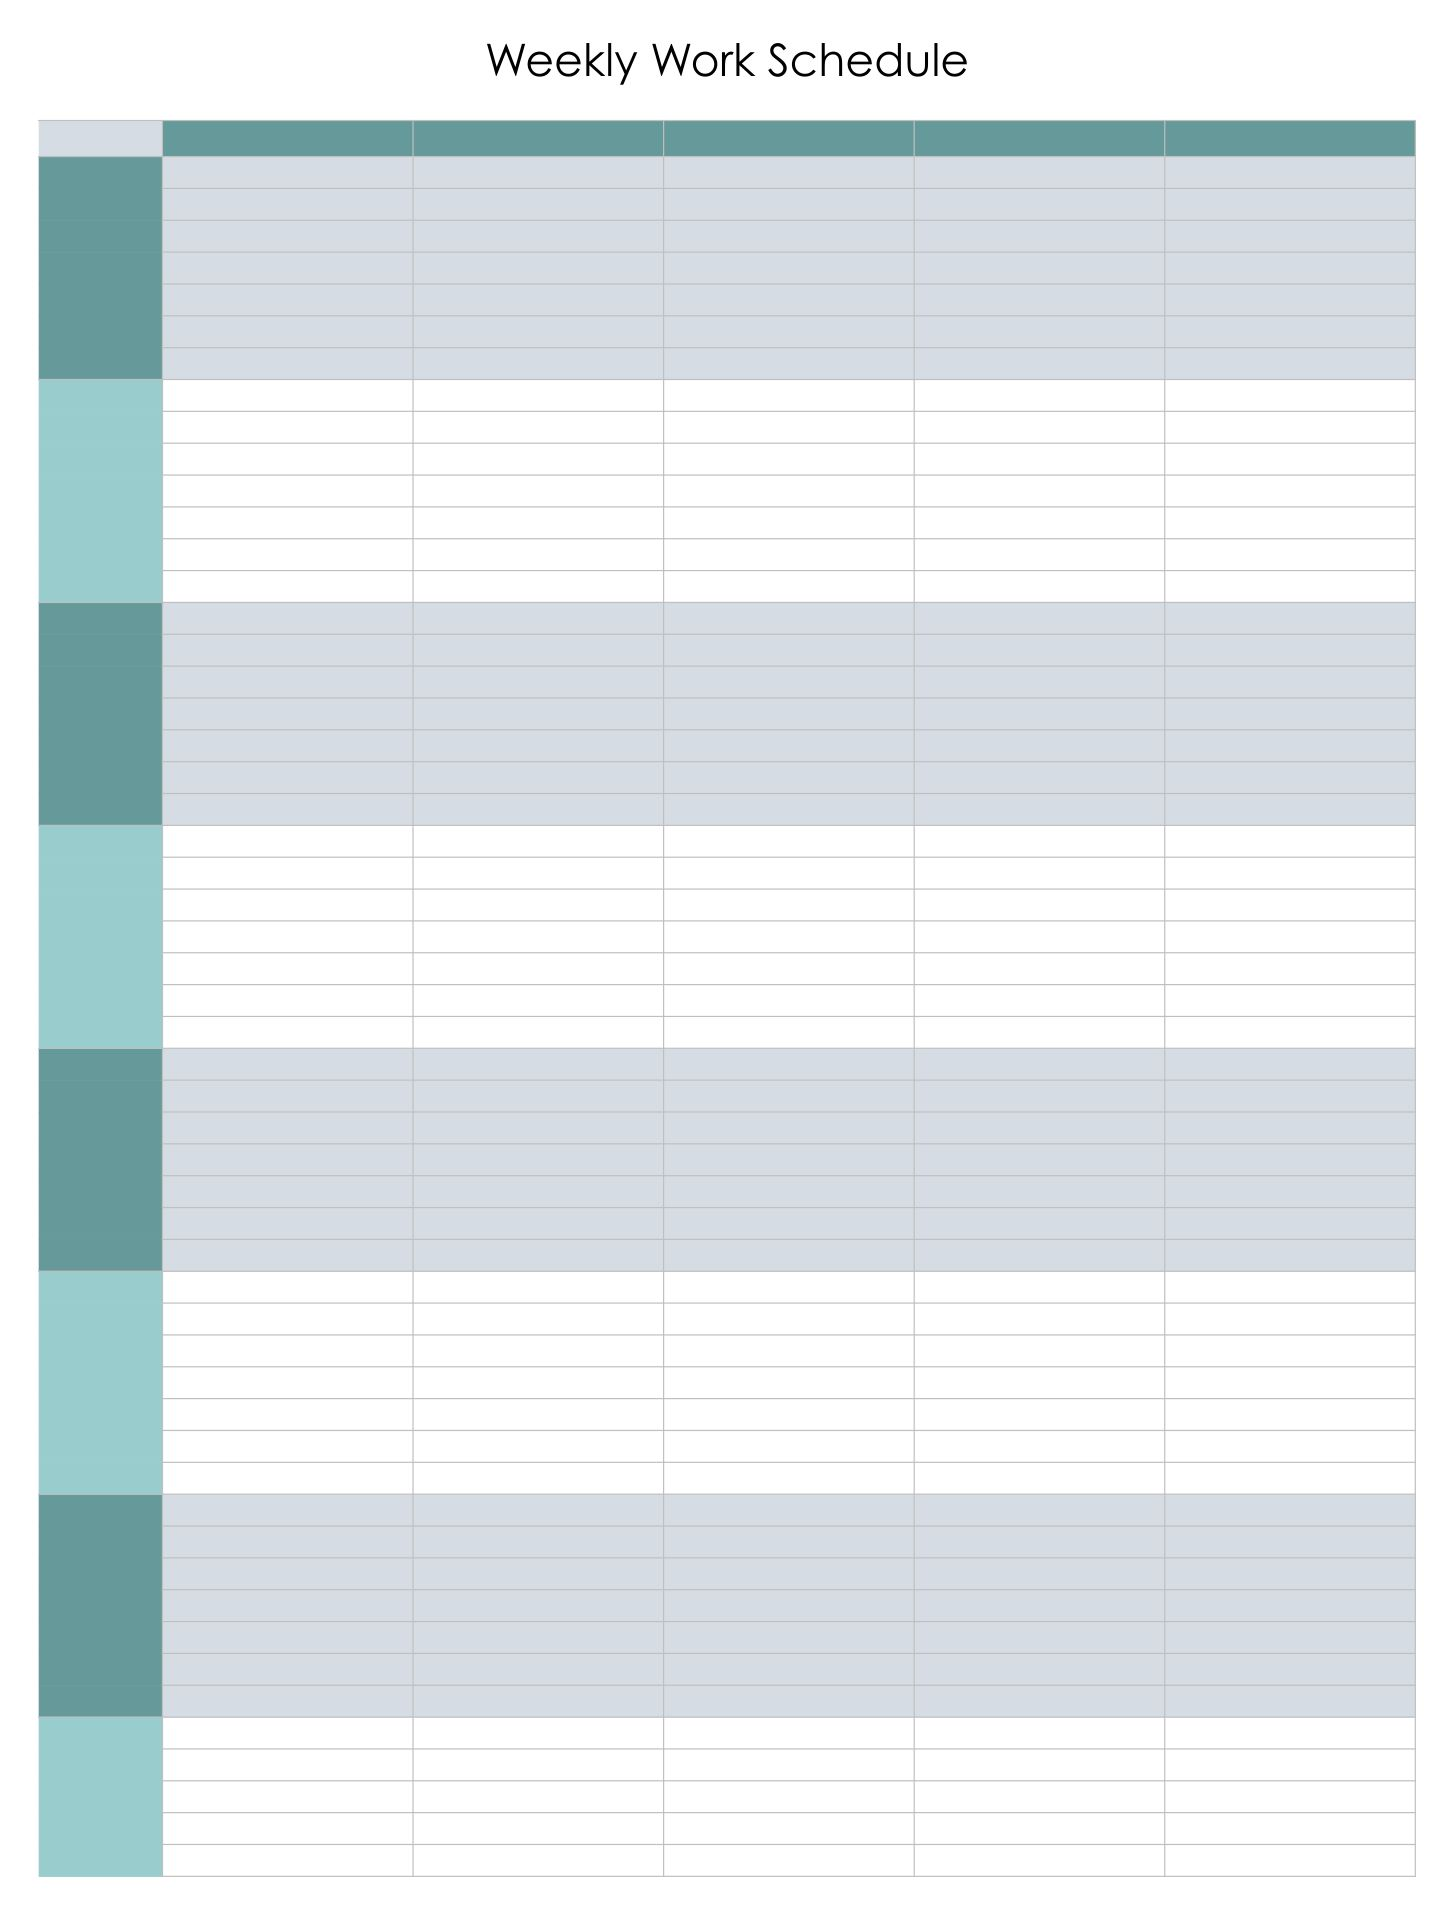 Weekly Work Schedule Template Excel on write a bill worksheet Photos ...